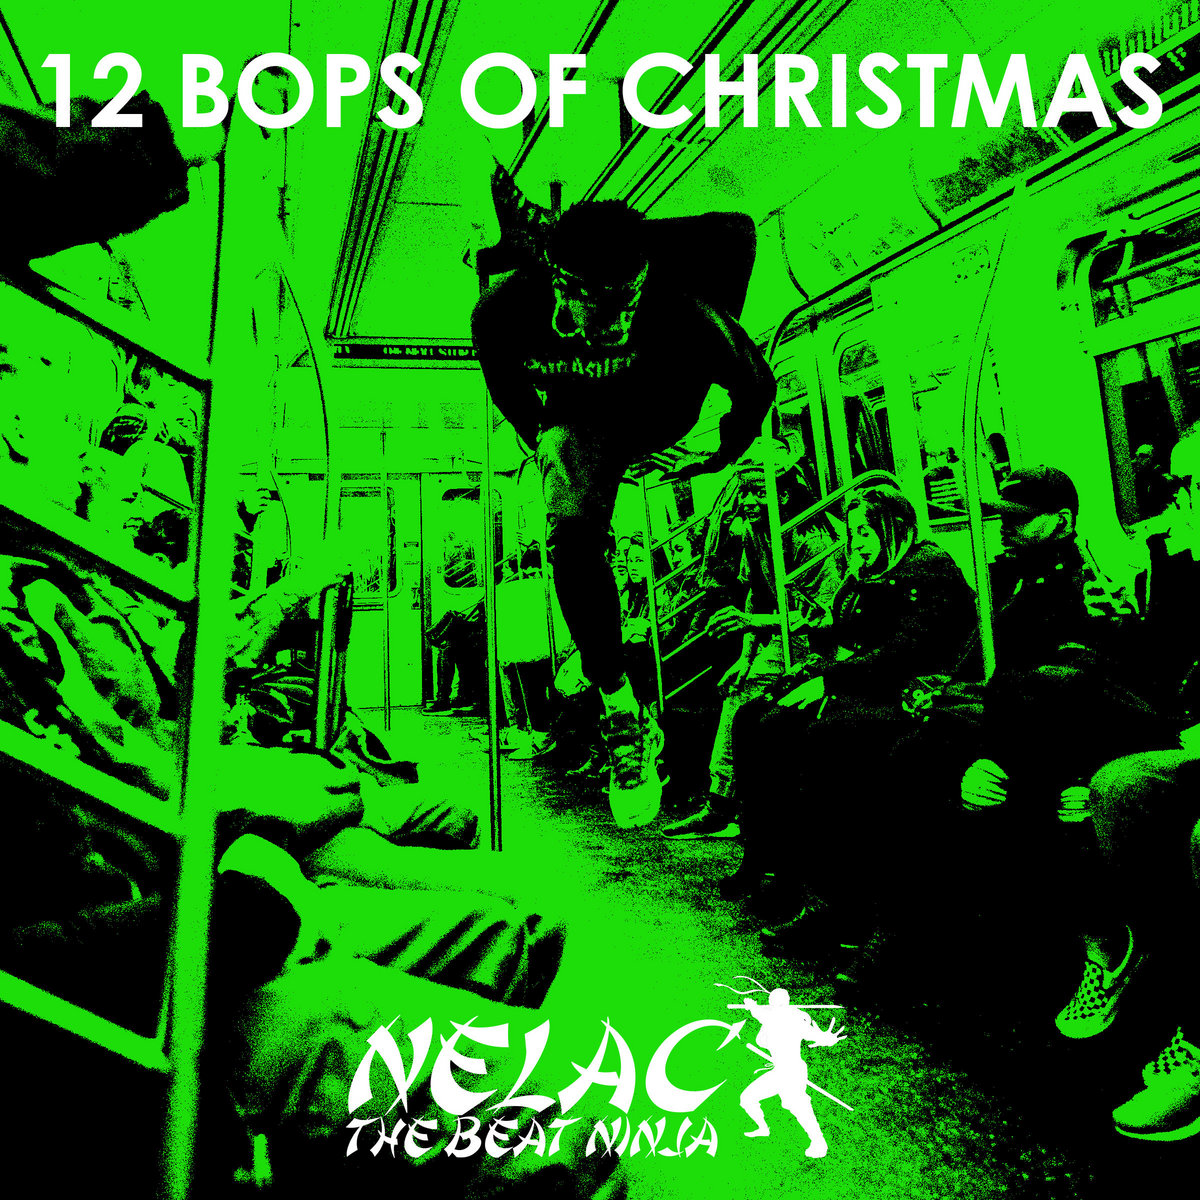 12 Bops of Christmas by NELAC